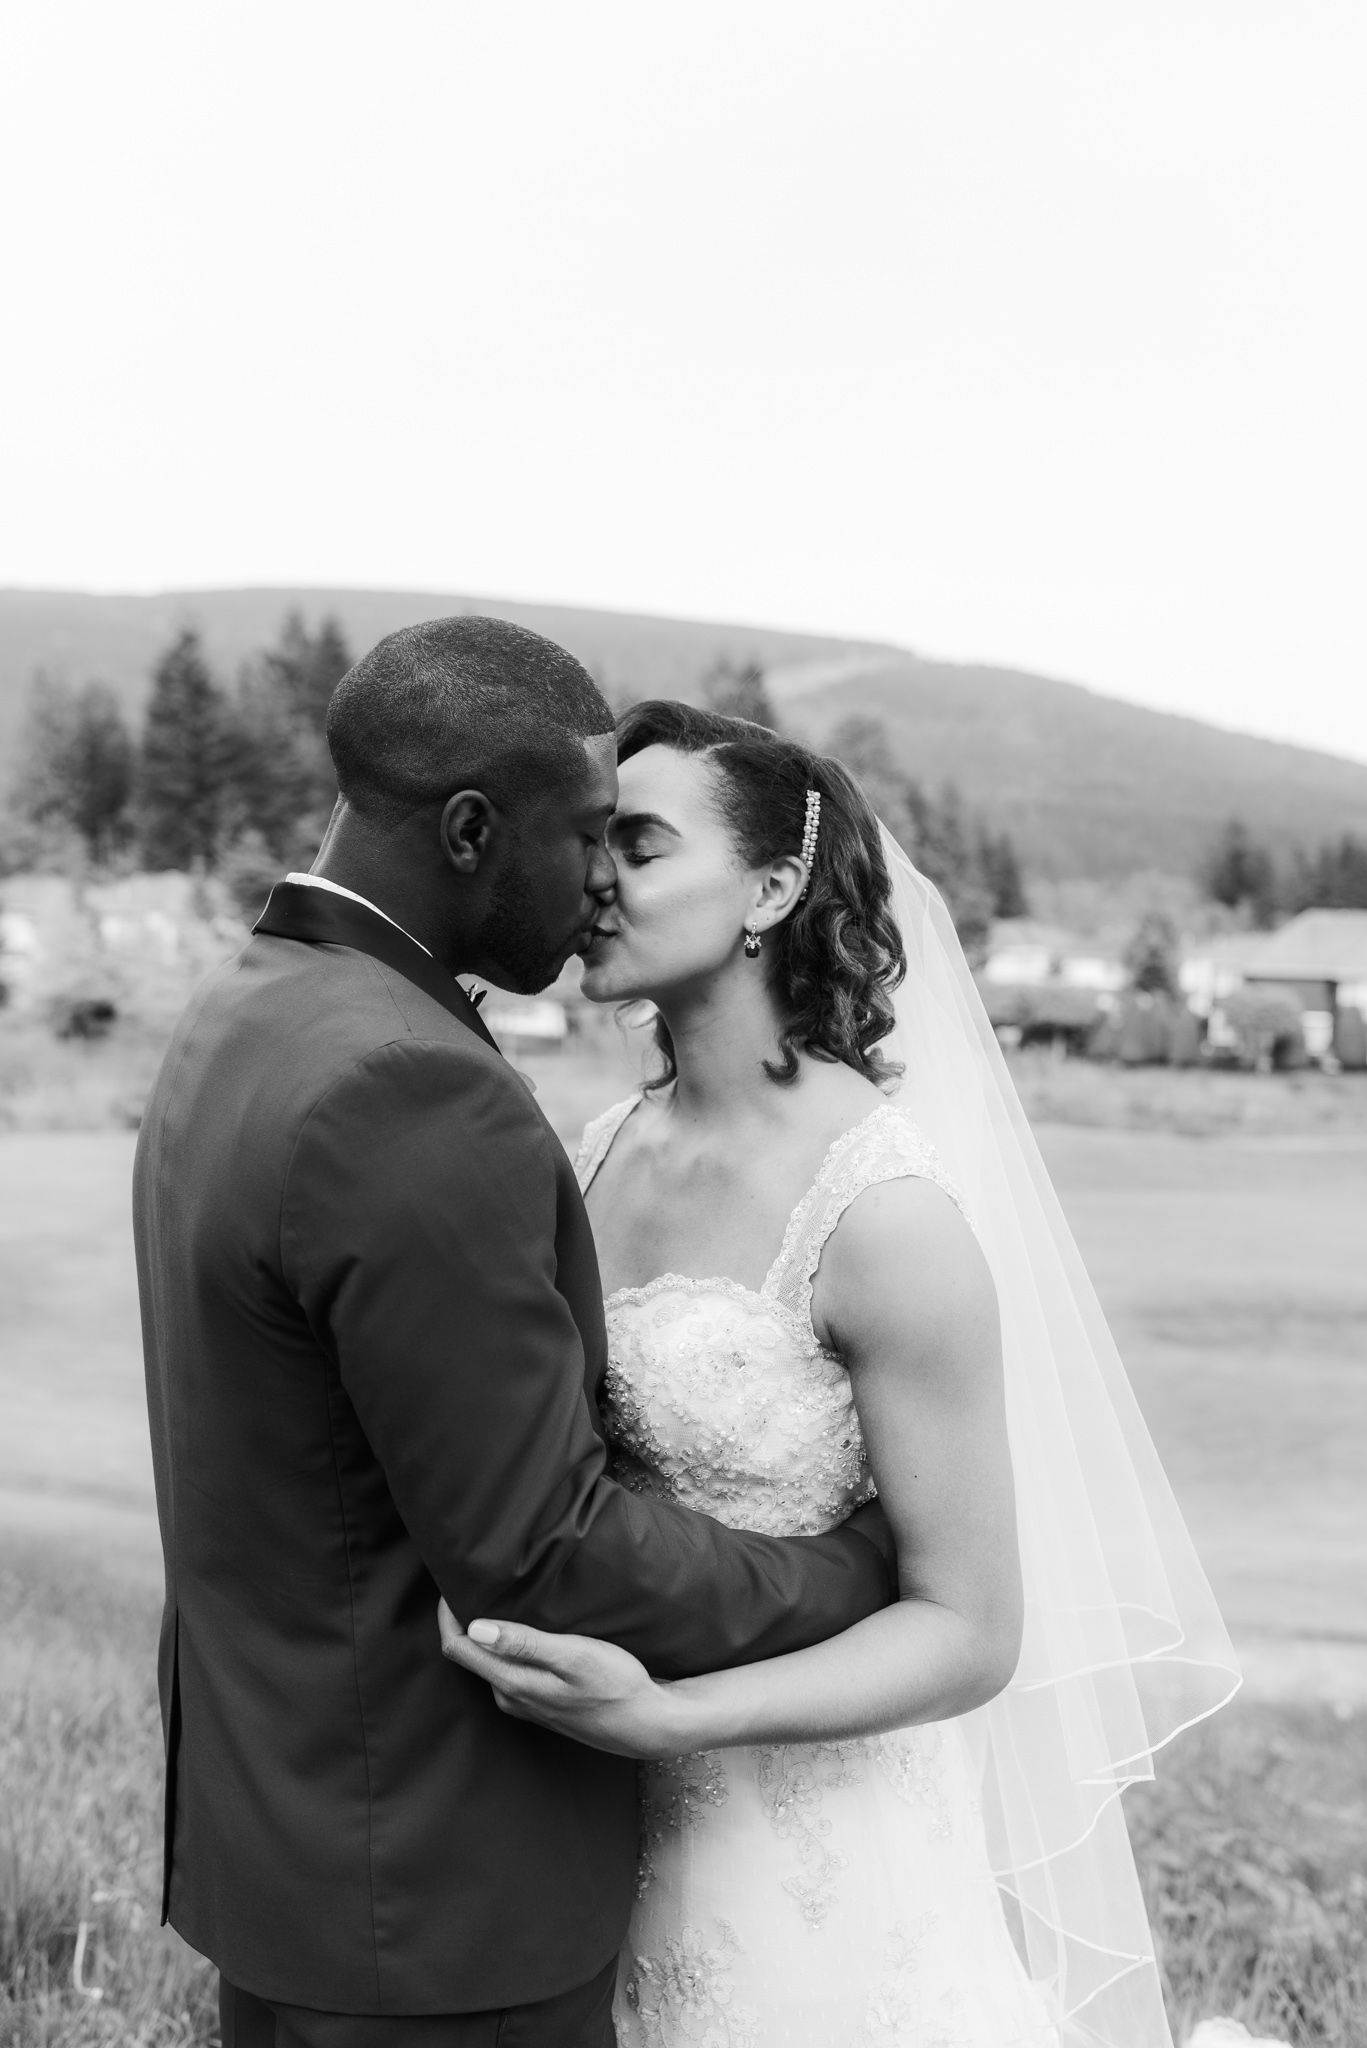 Gabe and Dwight_Westwood Plateau_Katie Powell Photography-48.jpg